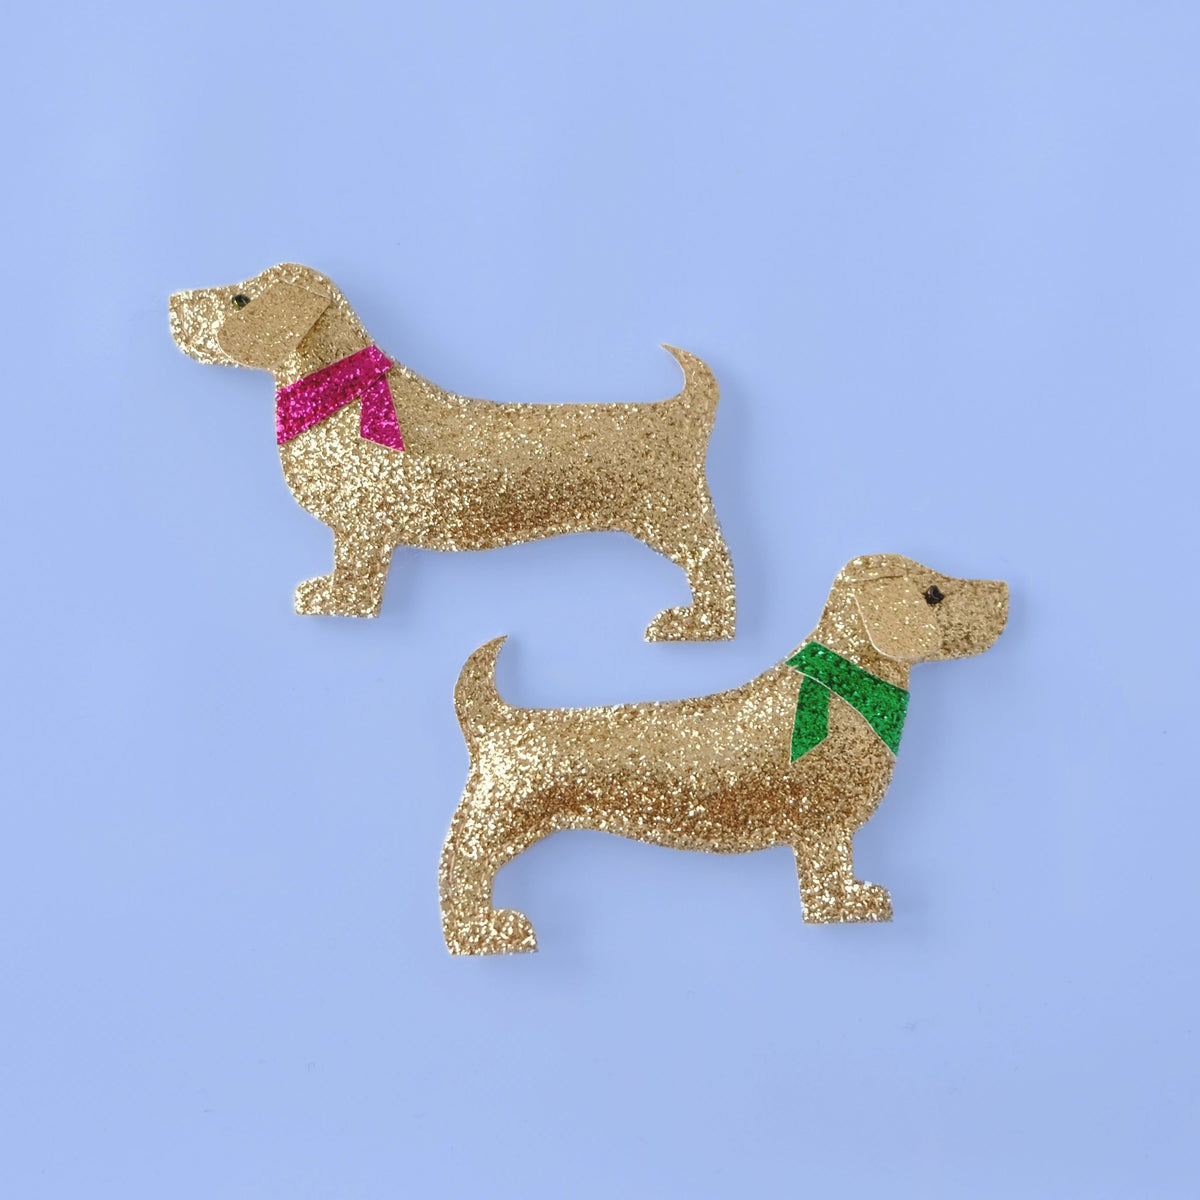 dog dachshund hair clips on blue background